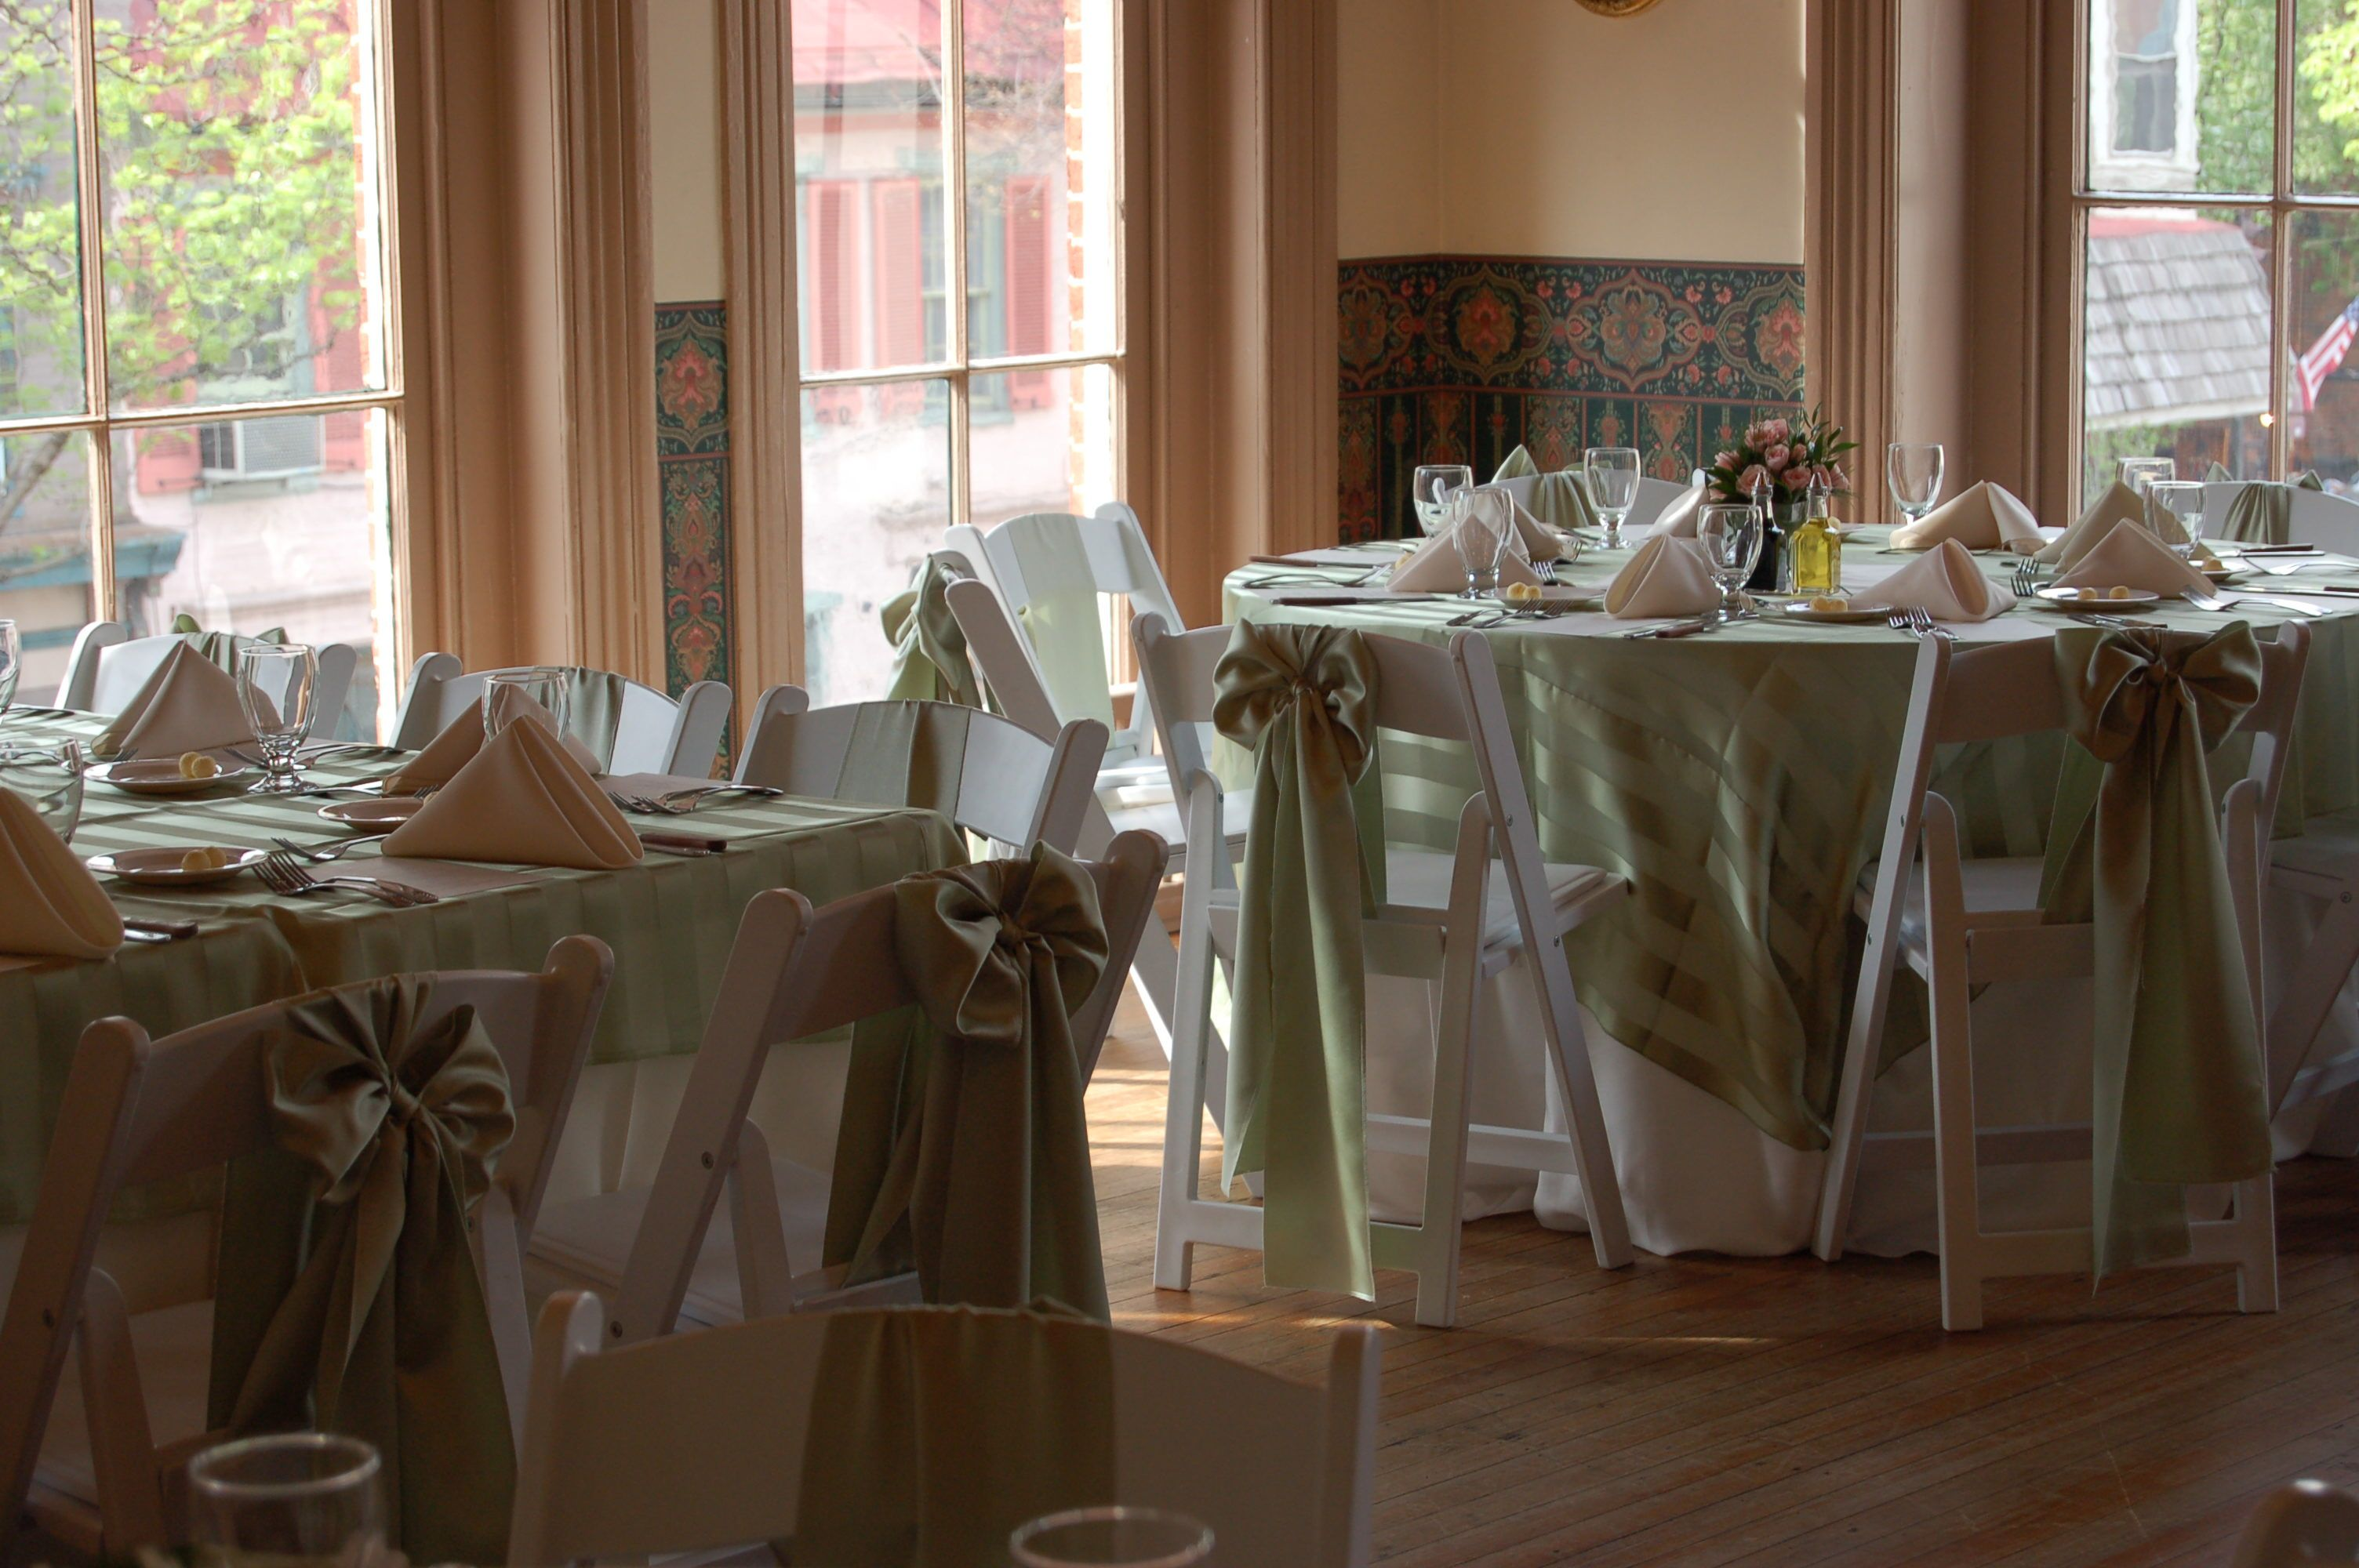 White Polyester underlay linens with Sage Satin Stripe Sheer